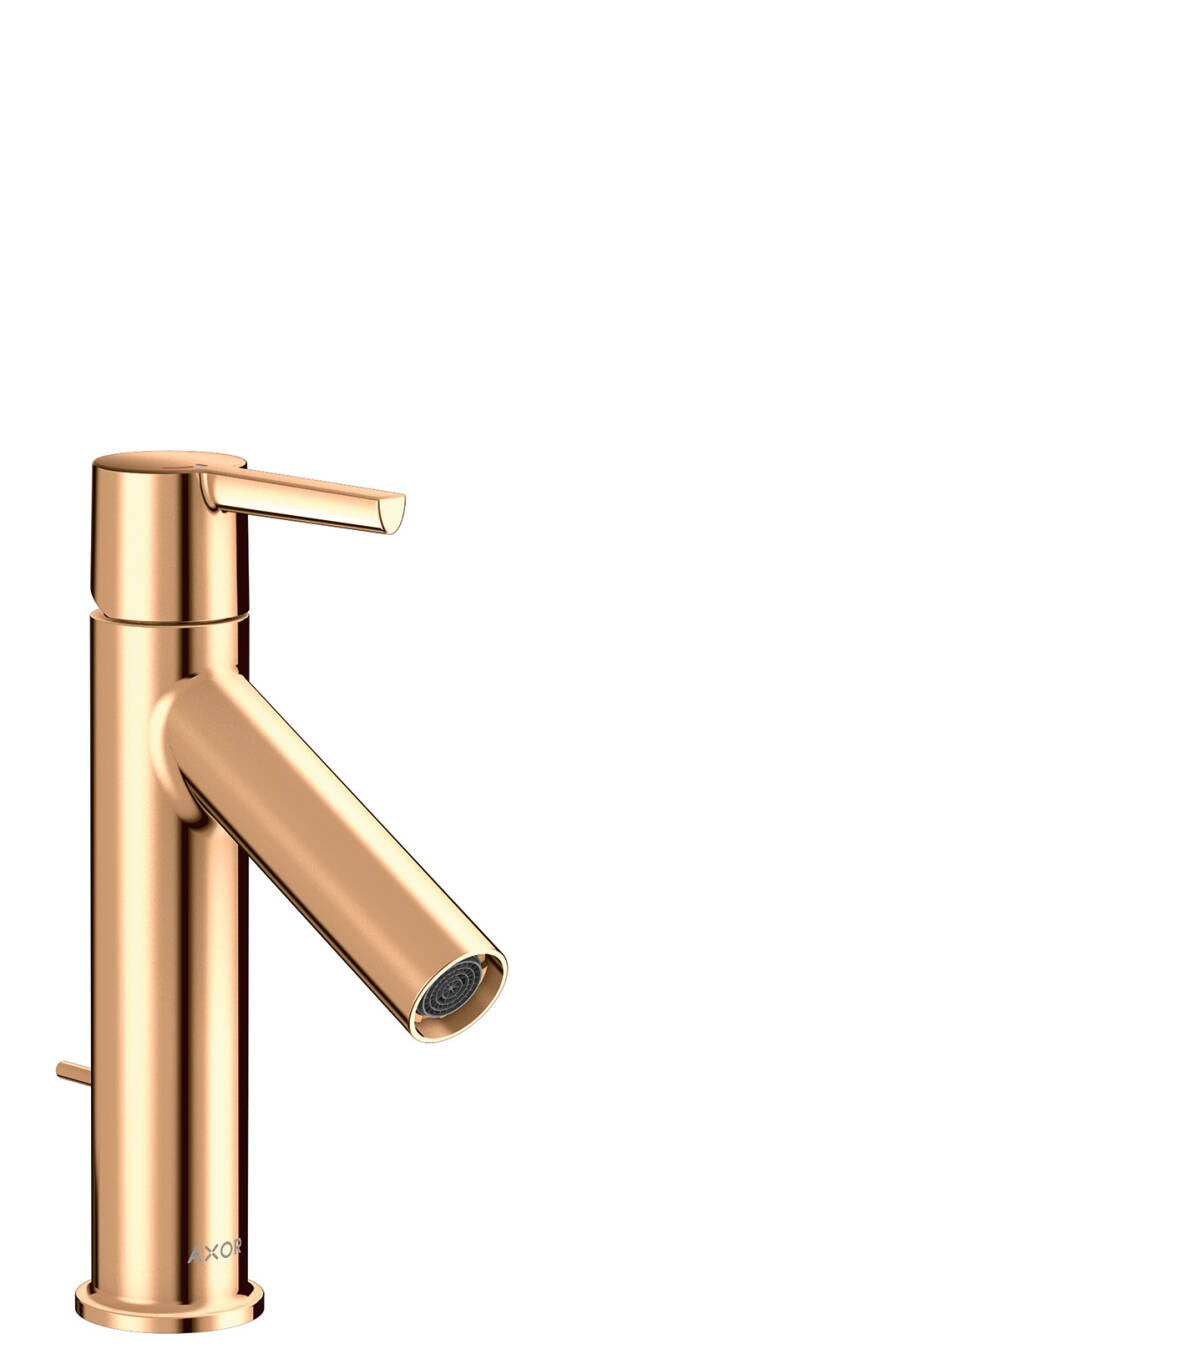 Single lever basin mixer 100 CoolStart with lever handle and pop-up waste set, Polished Bronze, 10007130